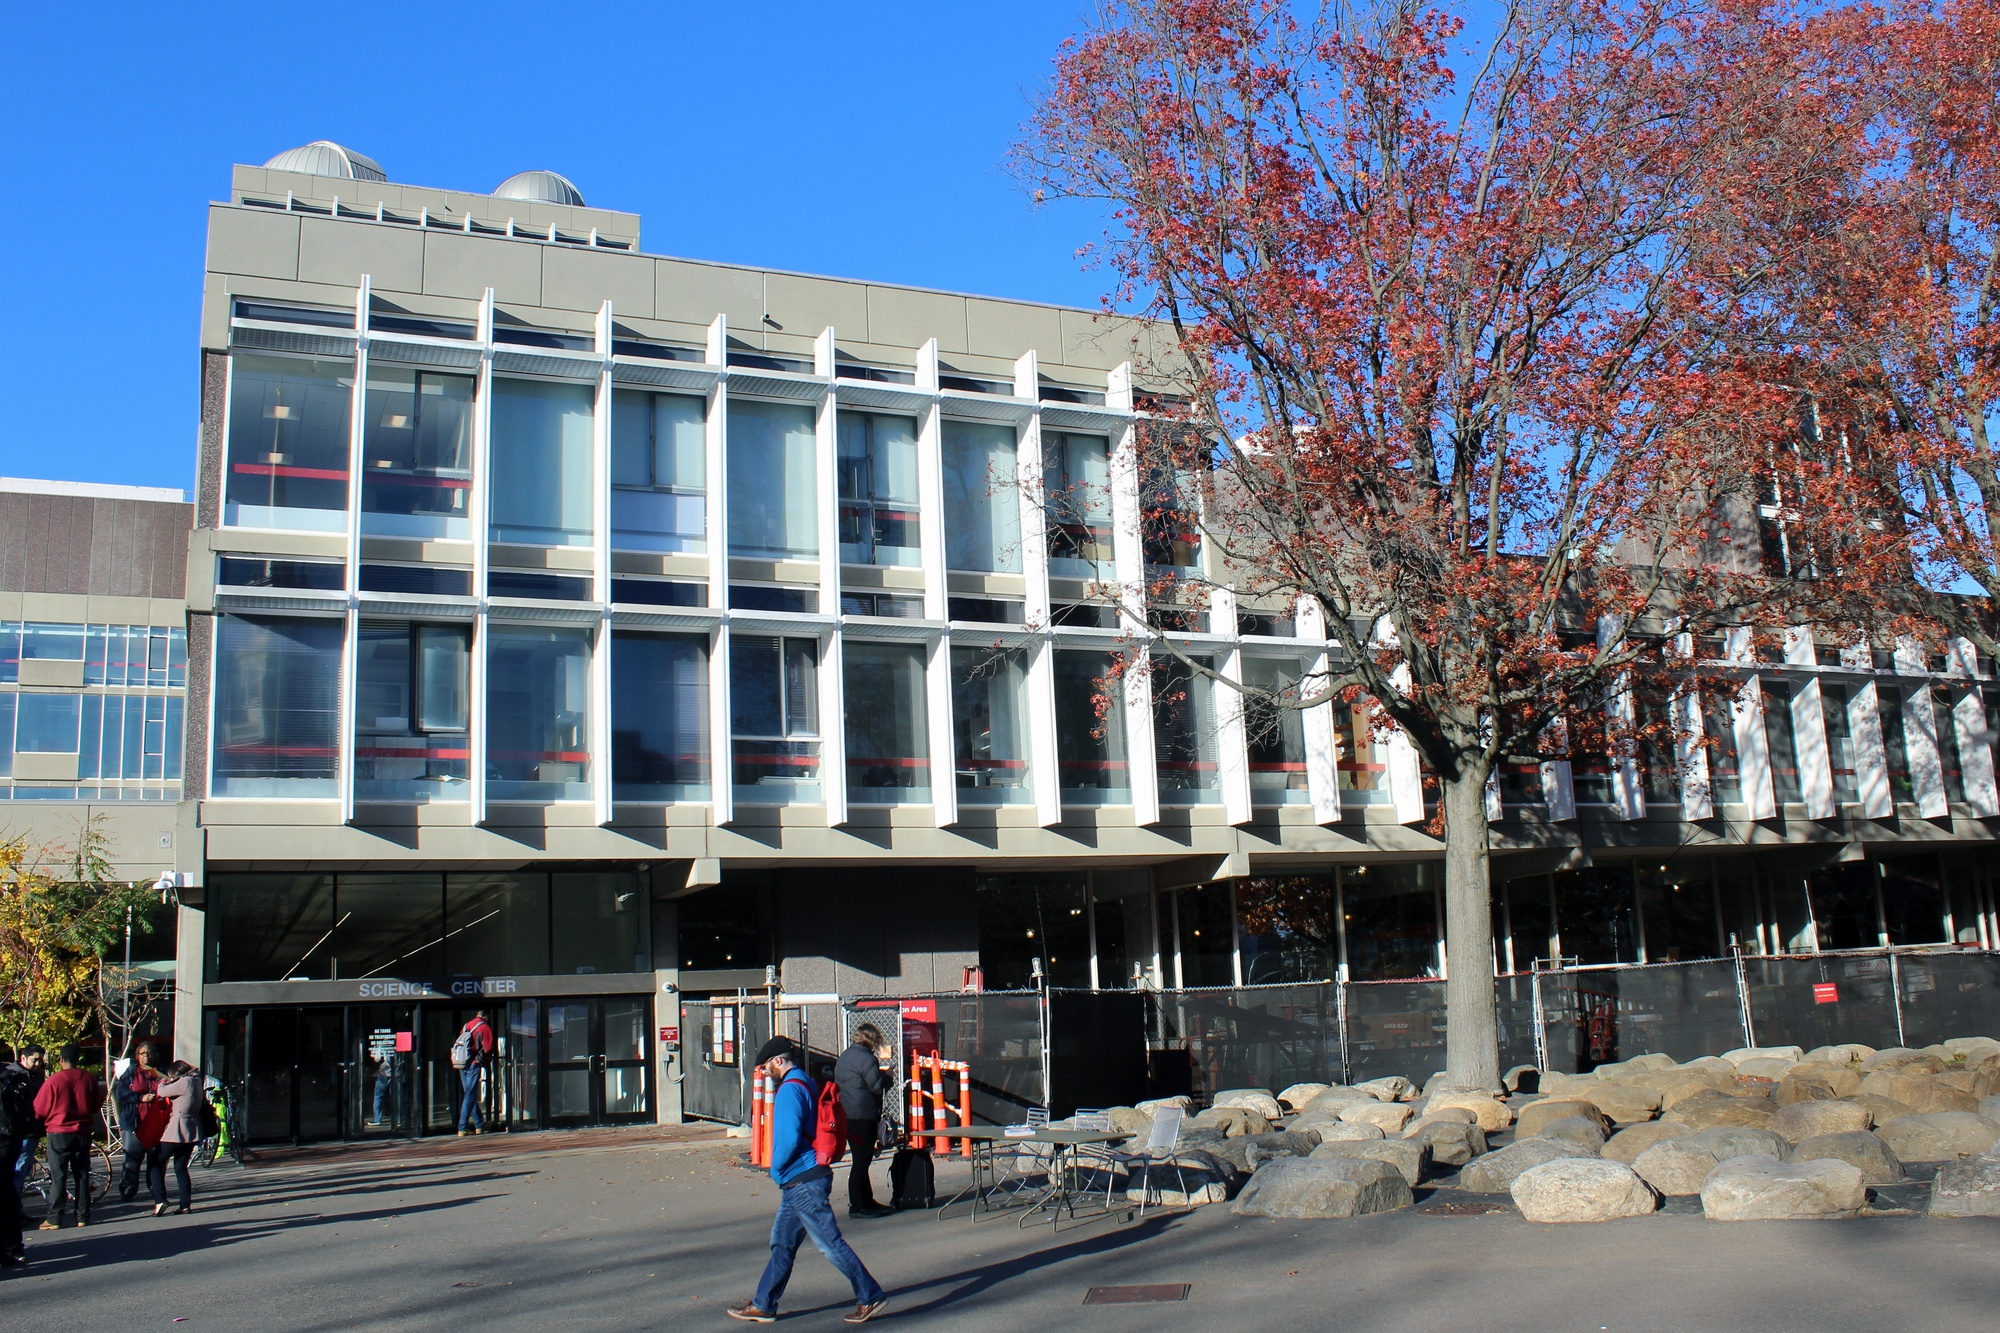 The Science Center at 1 Oxford Street is a focal point of the undergraduate STEM experience at Harvard, hosting many large introductory courses and laboratory-based classes.  Professors and researchers at the University have expressed concern that federal funding for scientific research may be curtailed by the Trump administration.